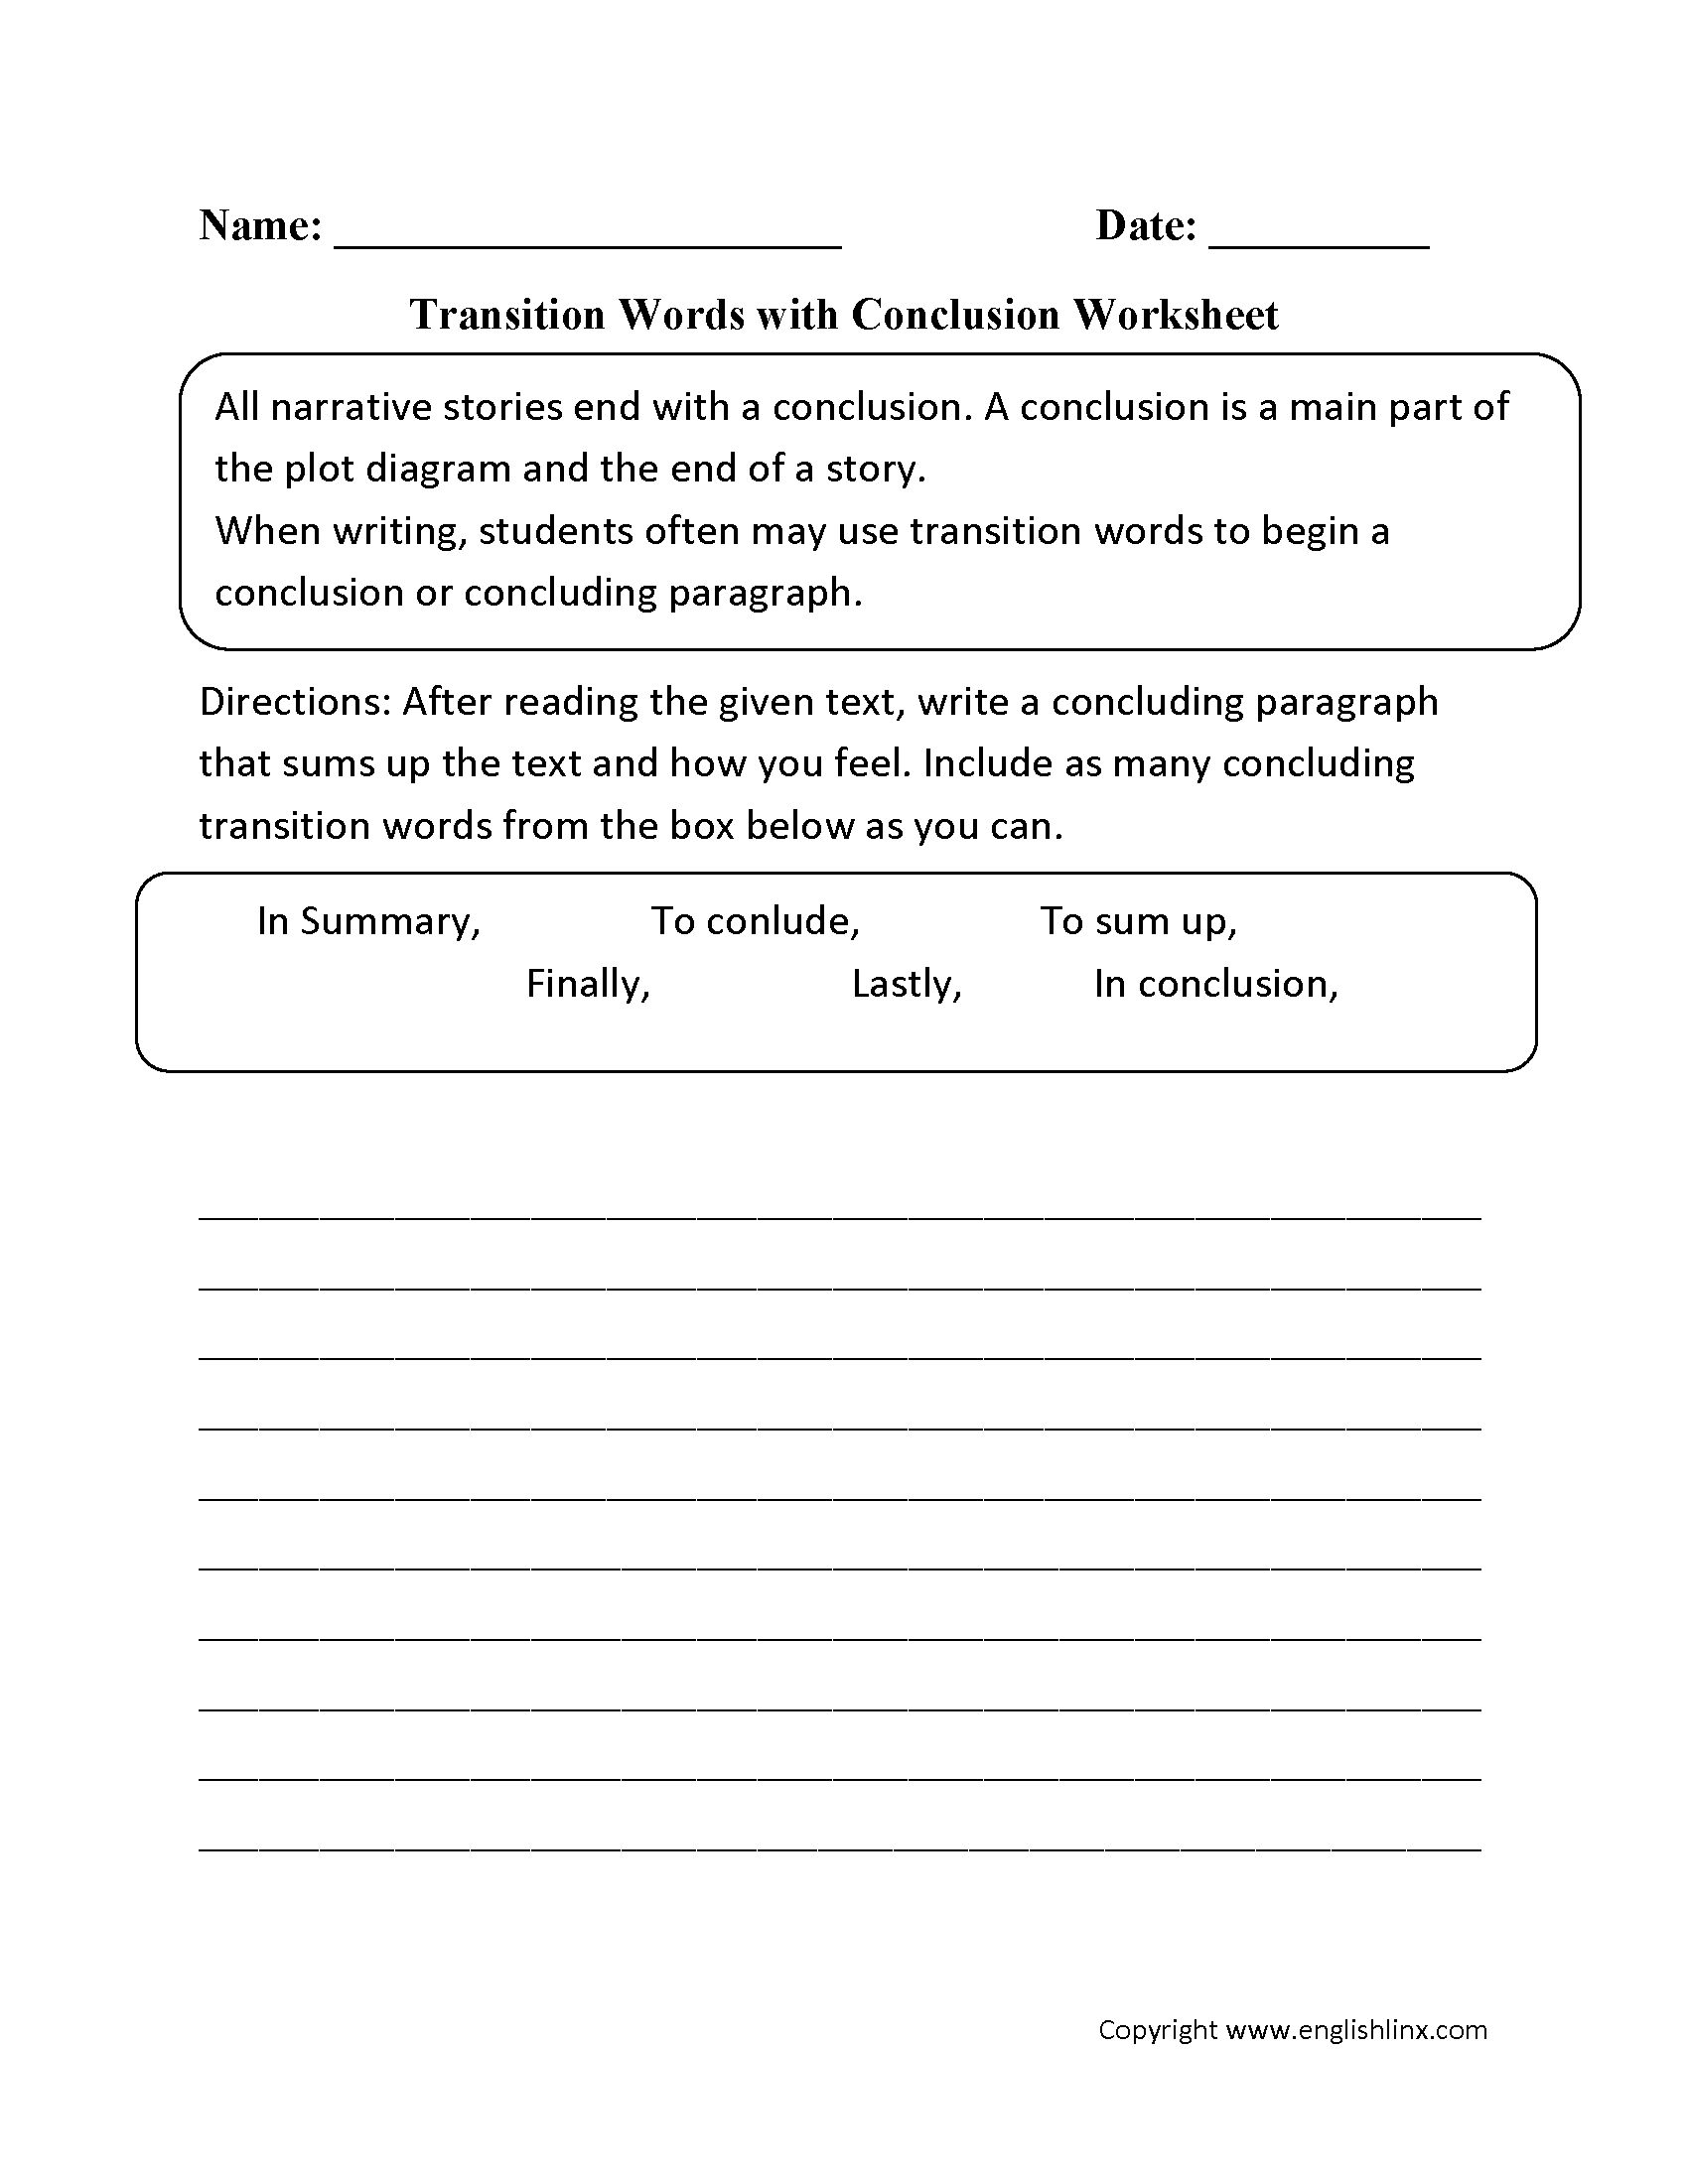 Reading Worksheets – Drawing Conclusions Worksheets 5th Grade